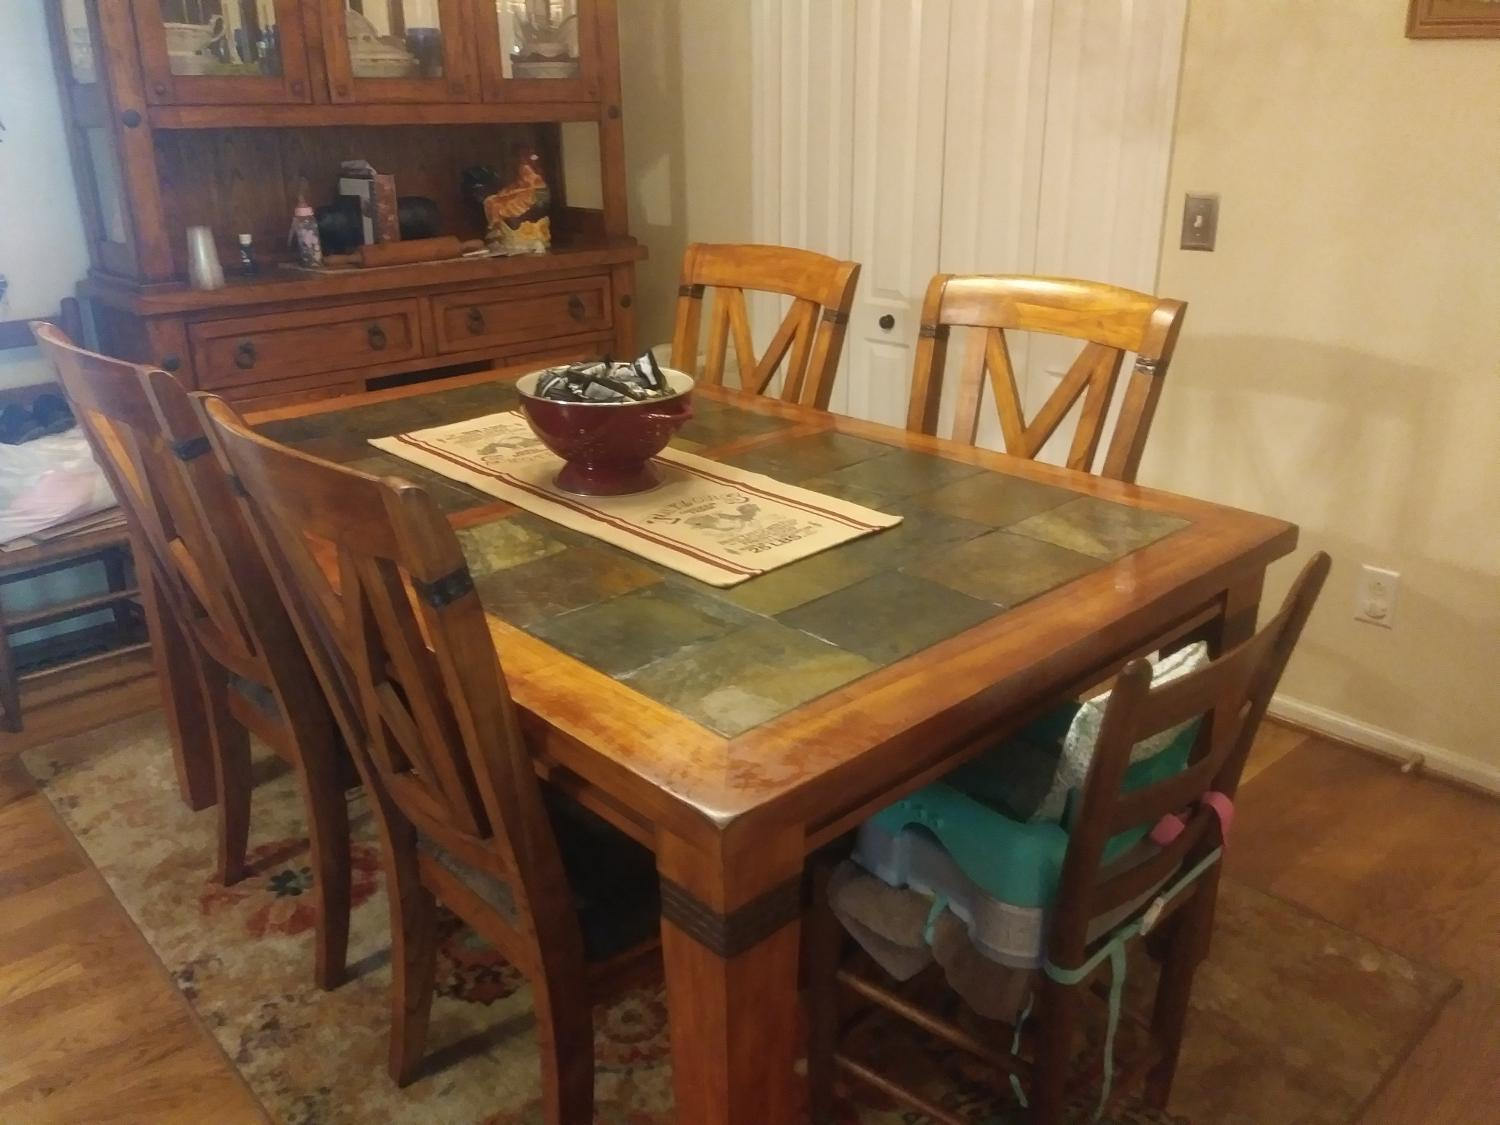 Best Dining Set And China Hutch For Sale In Spring Hill Tennessee For 2021